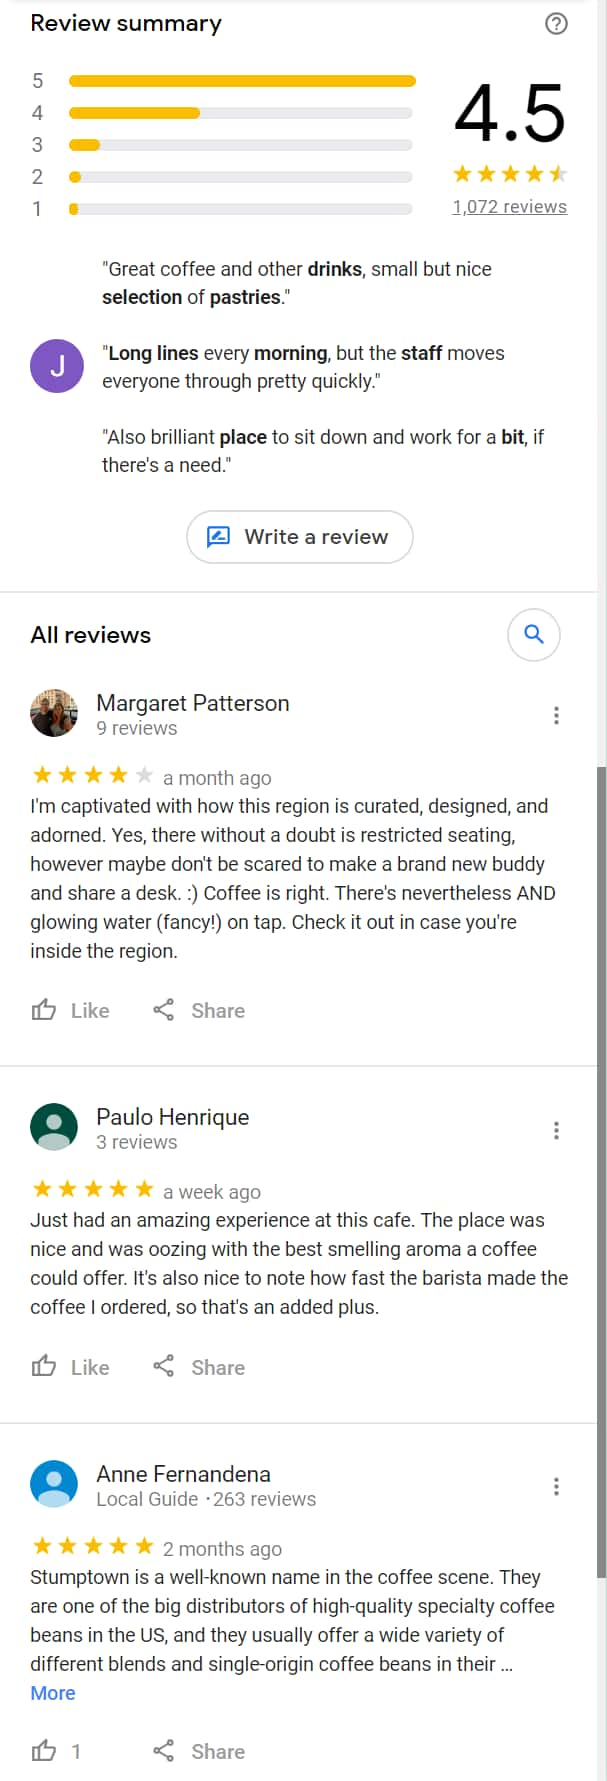 """User Reviews"" for place results"